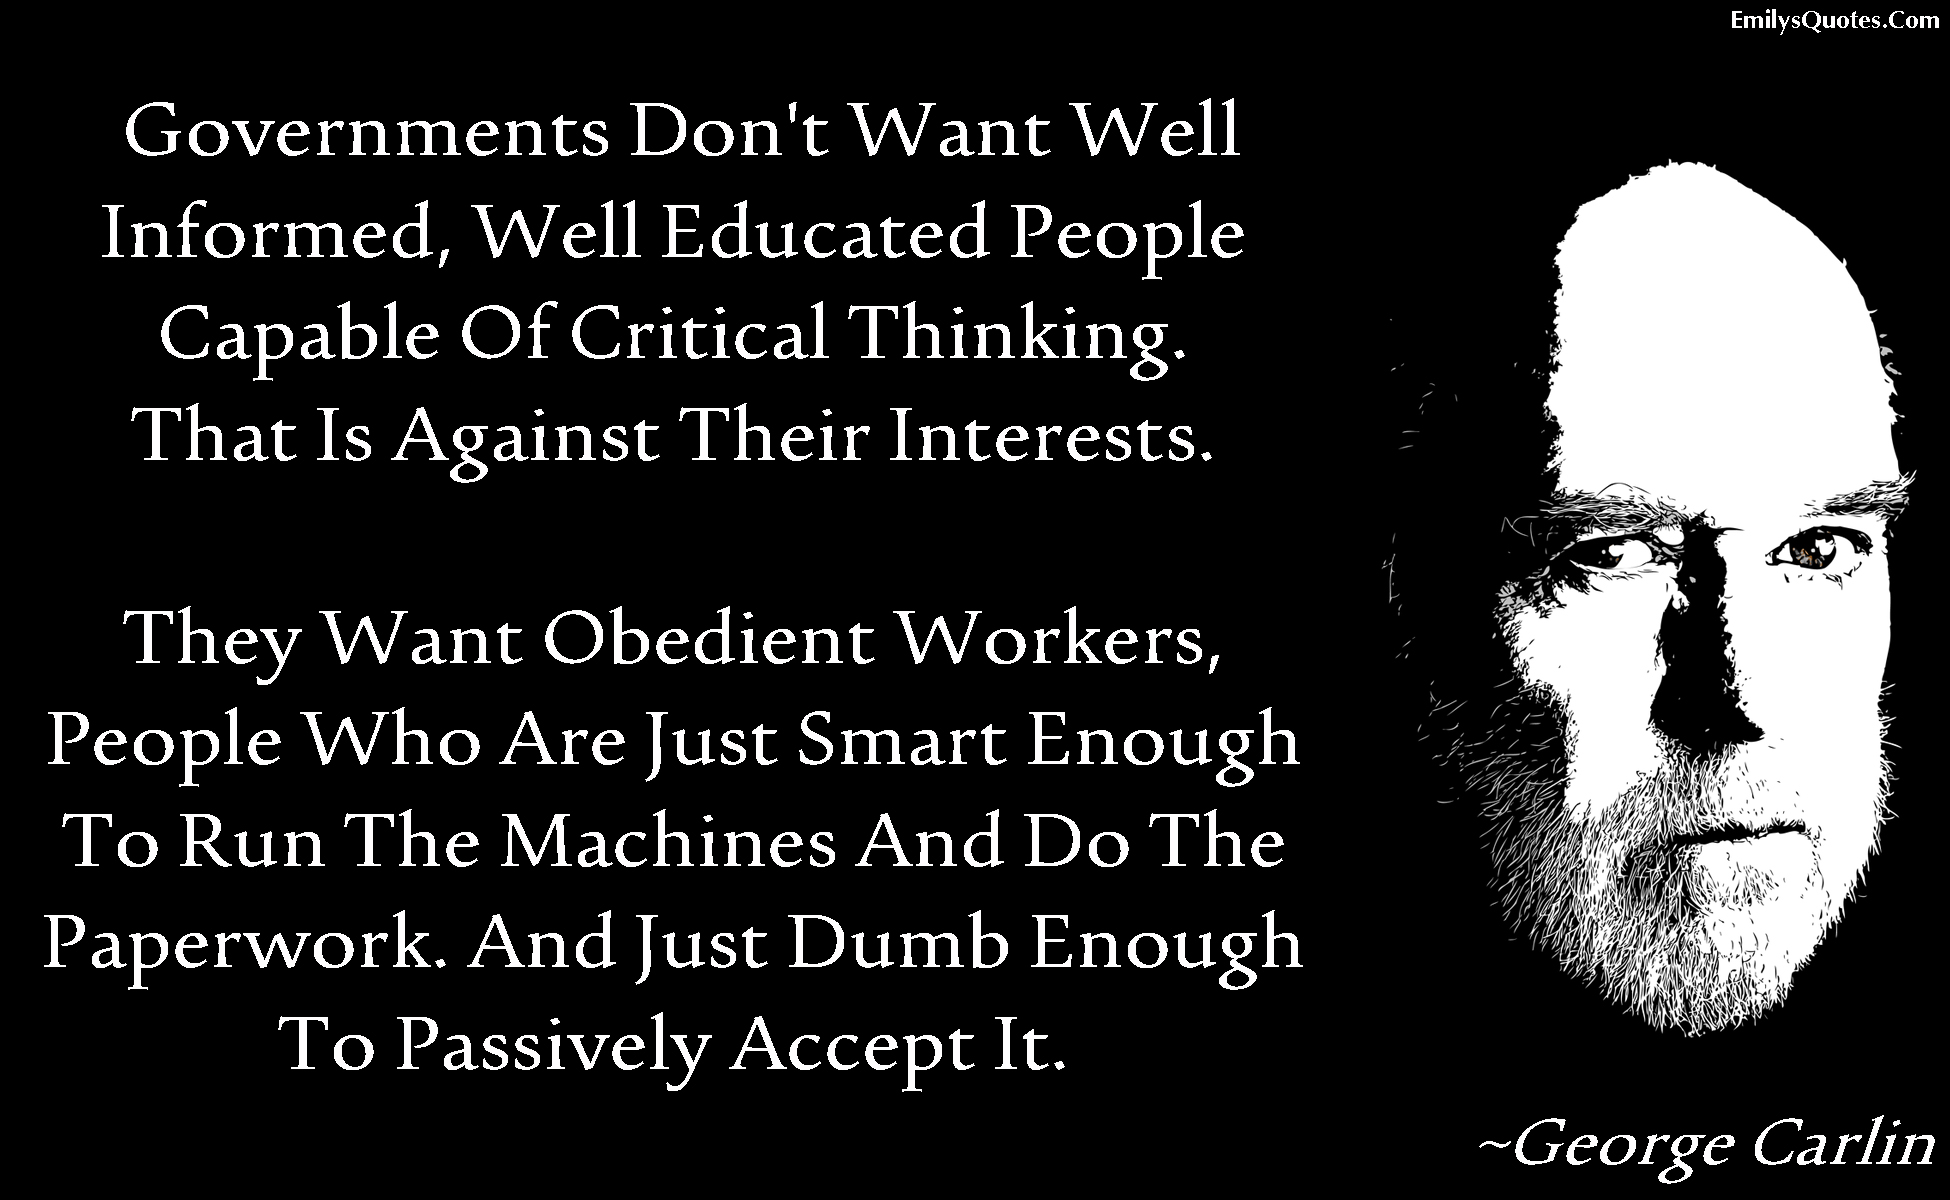 EmilysQuotes.Com - Government, educated people, need, ignorance, sad, life, George Carlin, truth